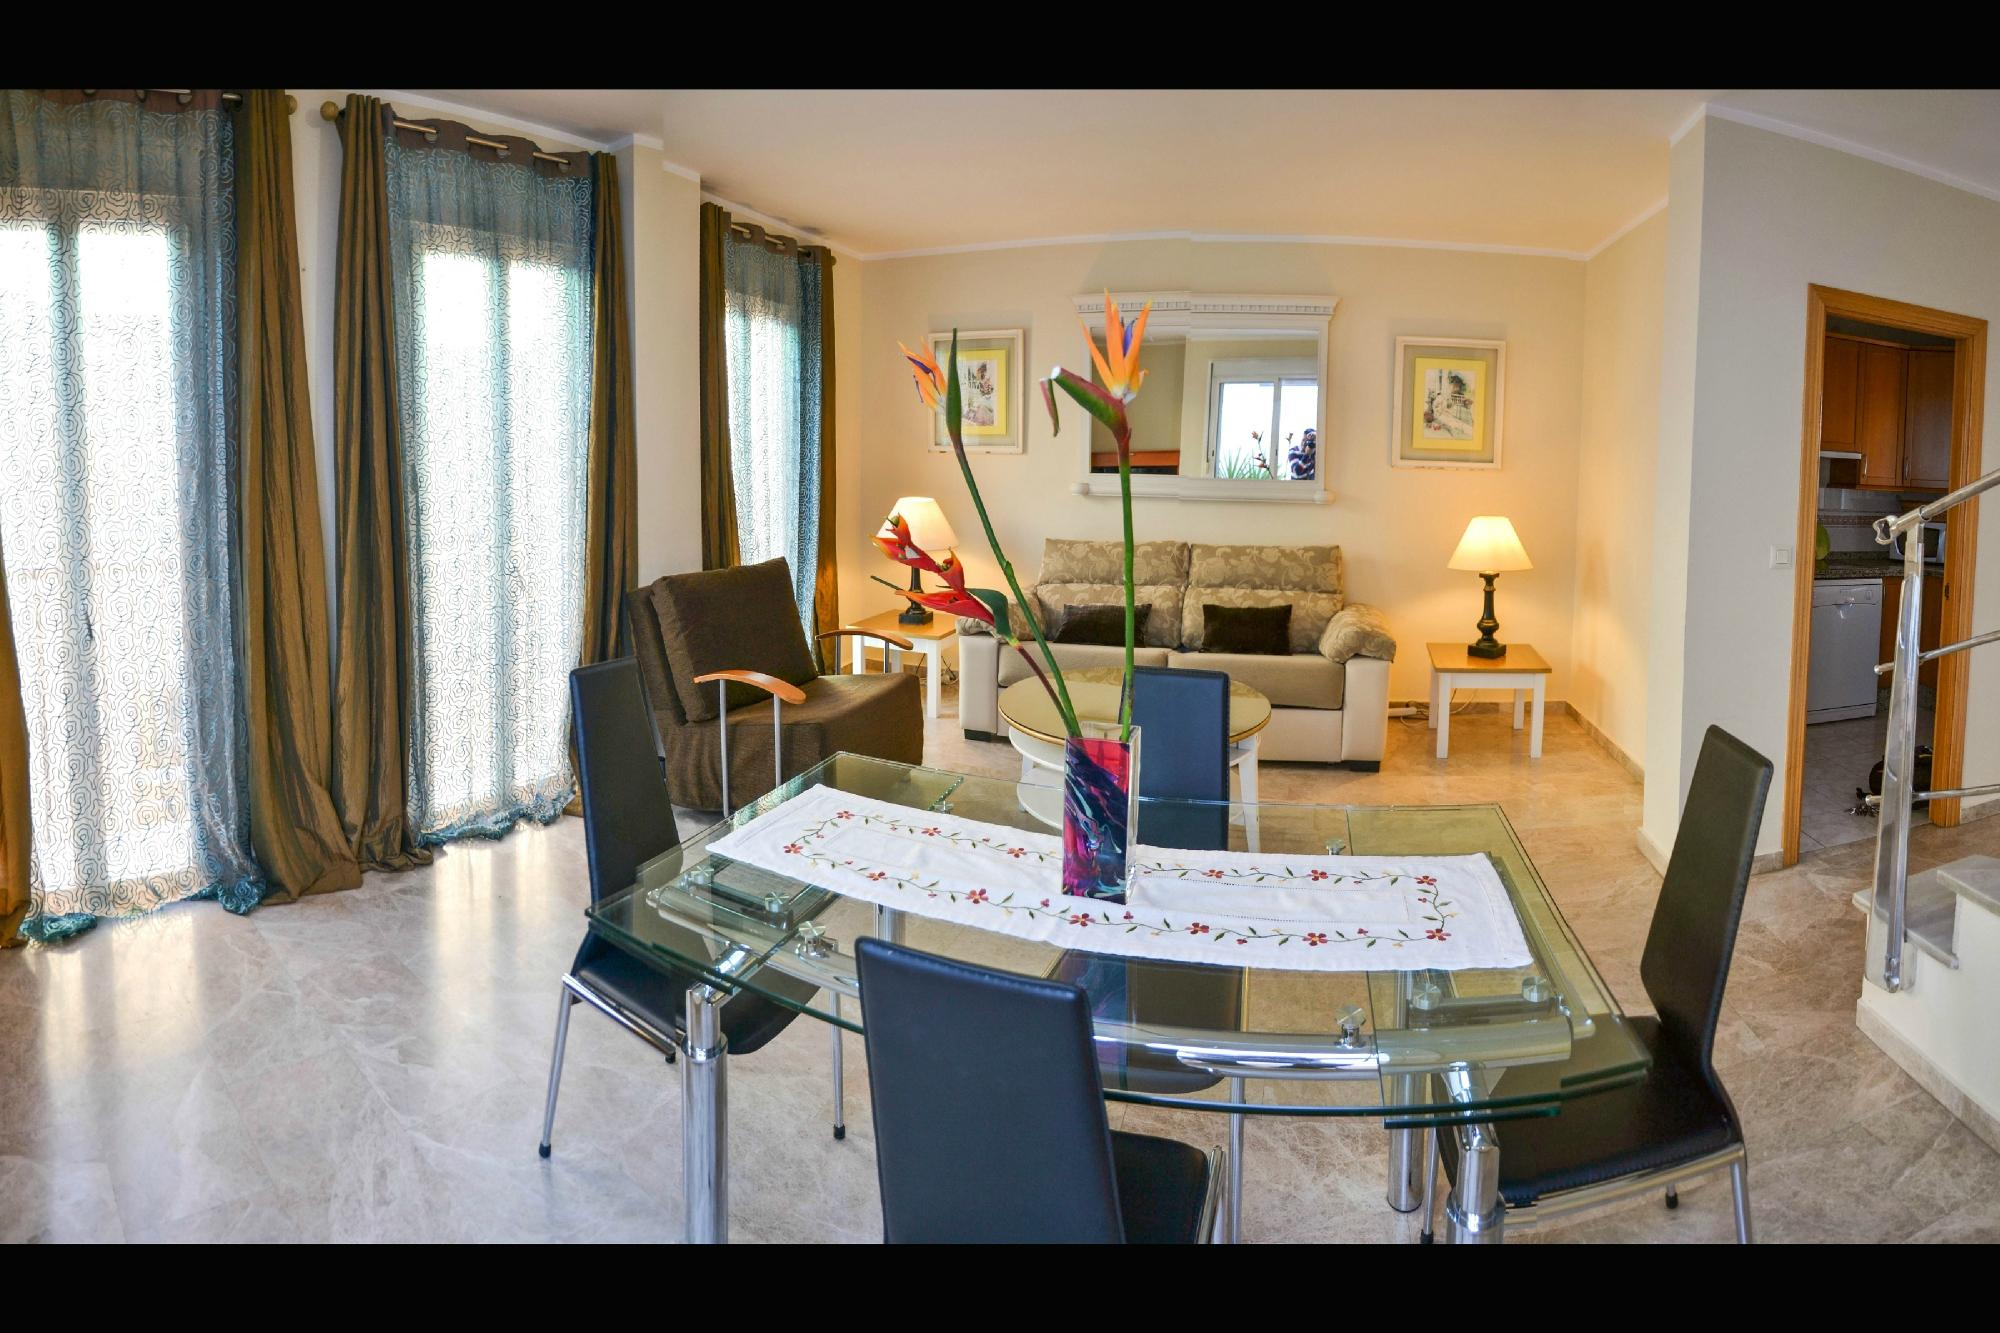 Apartametos Sevilla